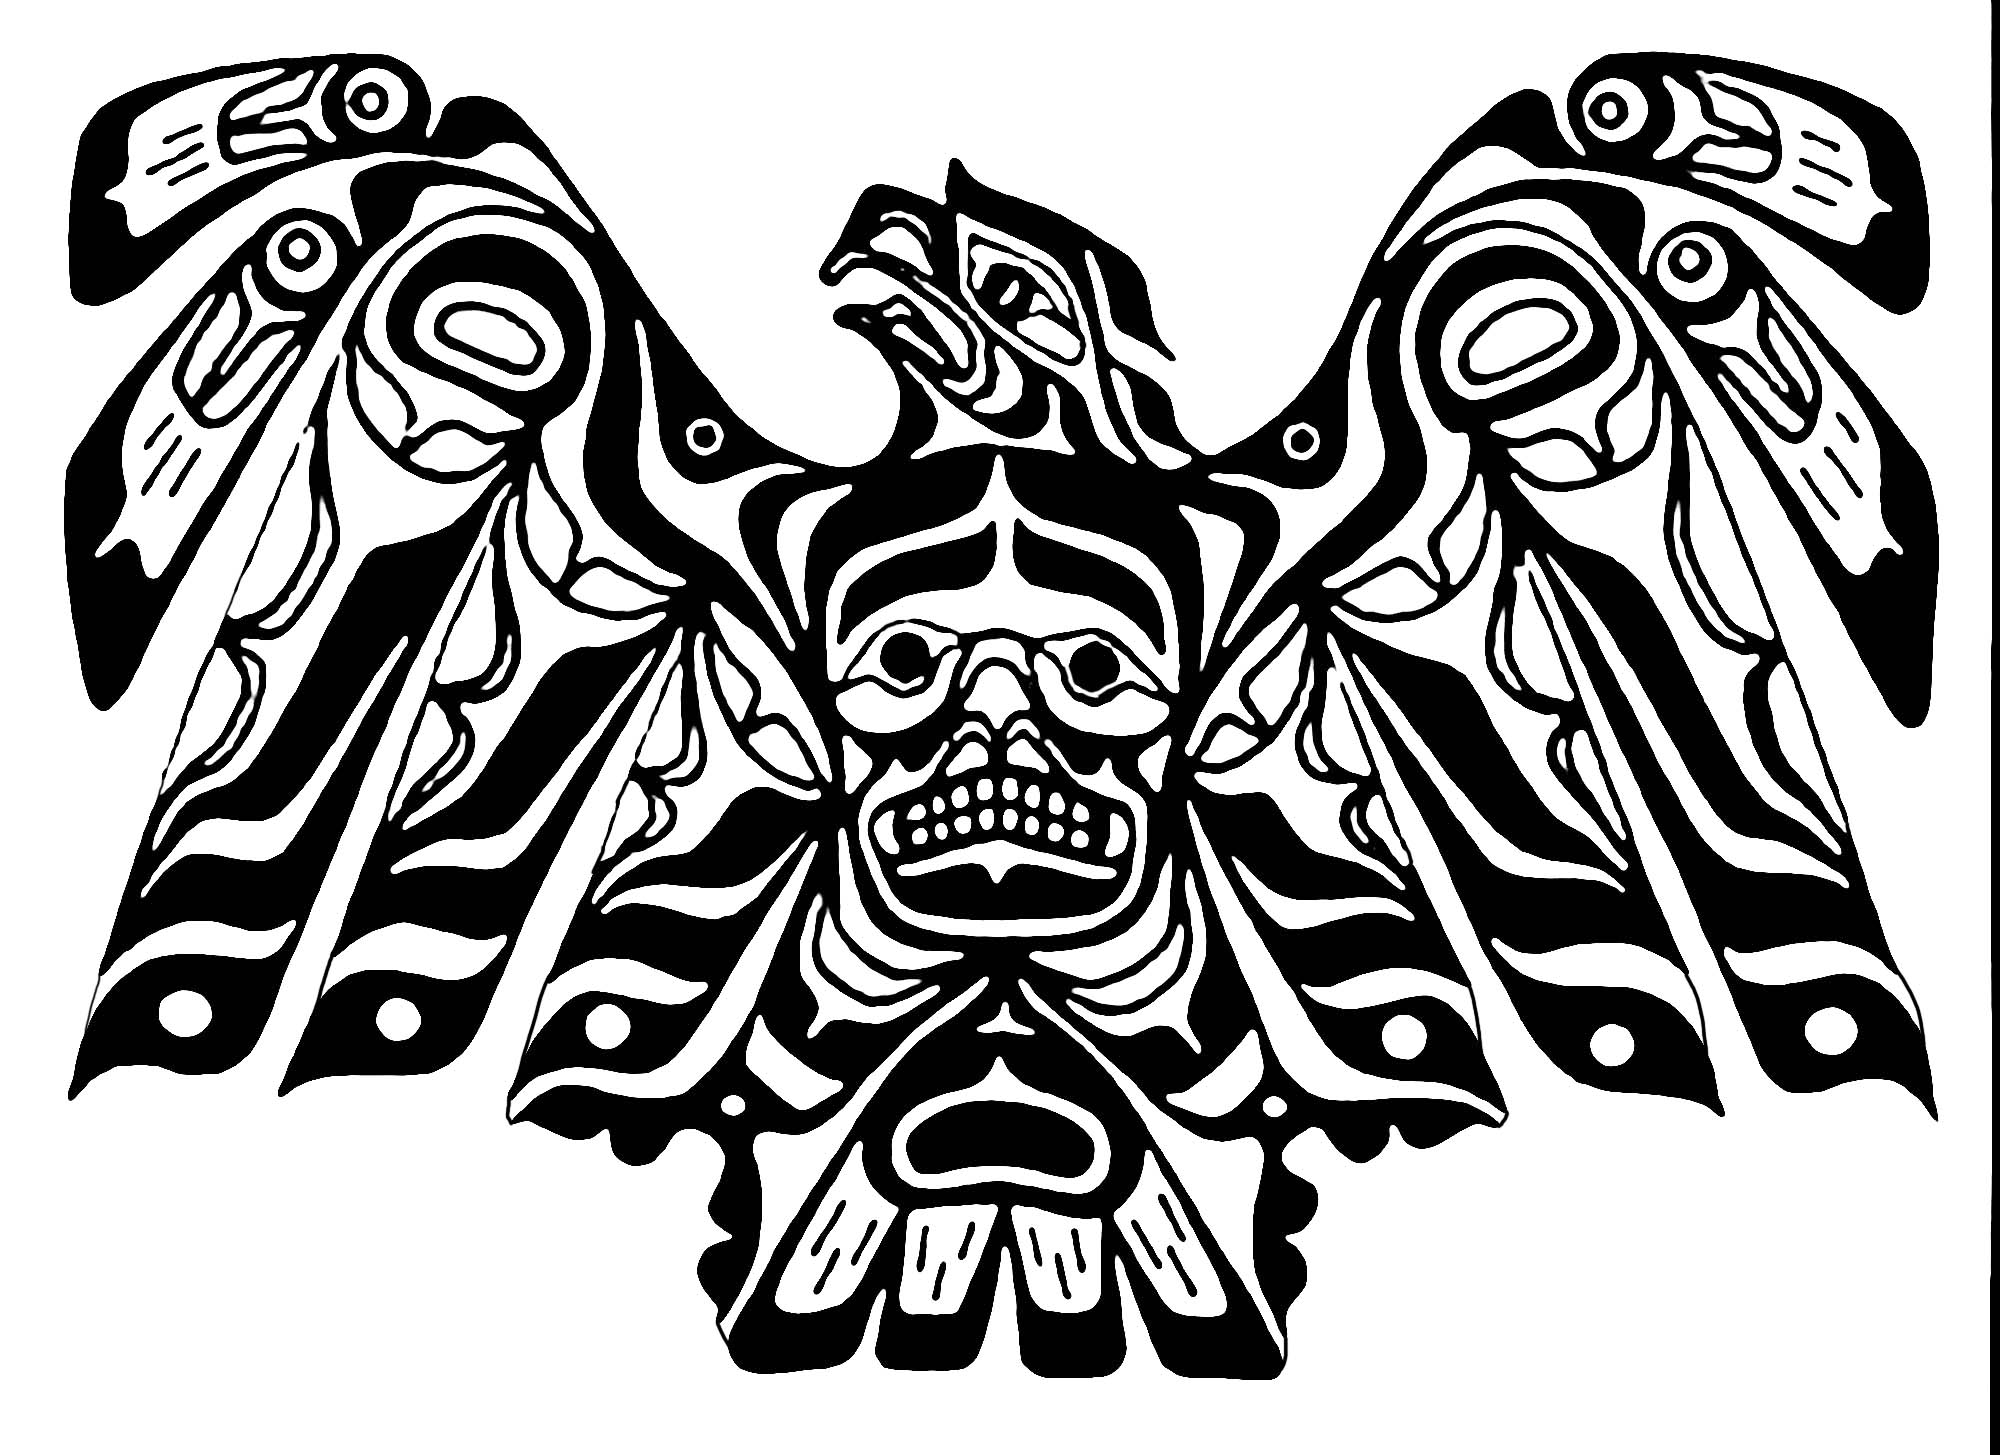 art northwest coastal people eagle native american art